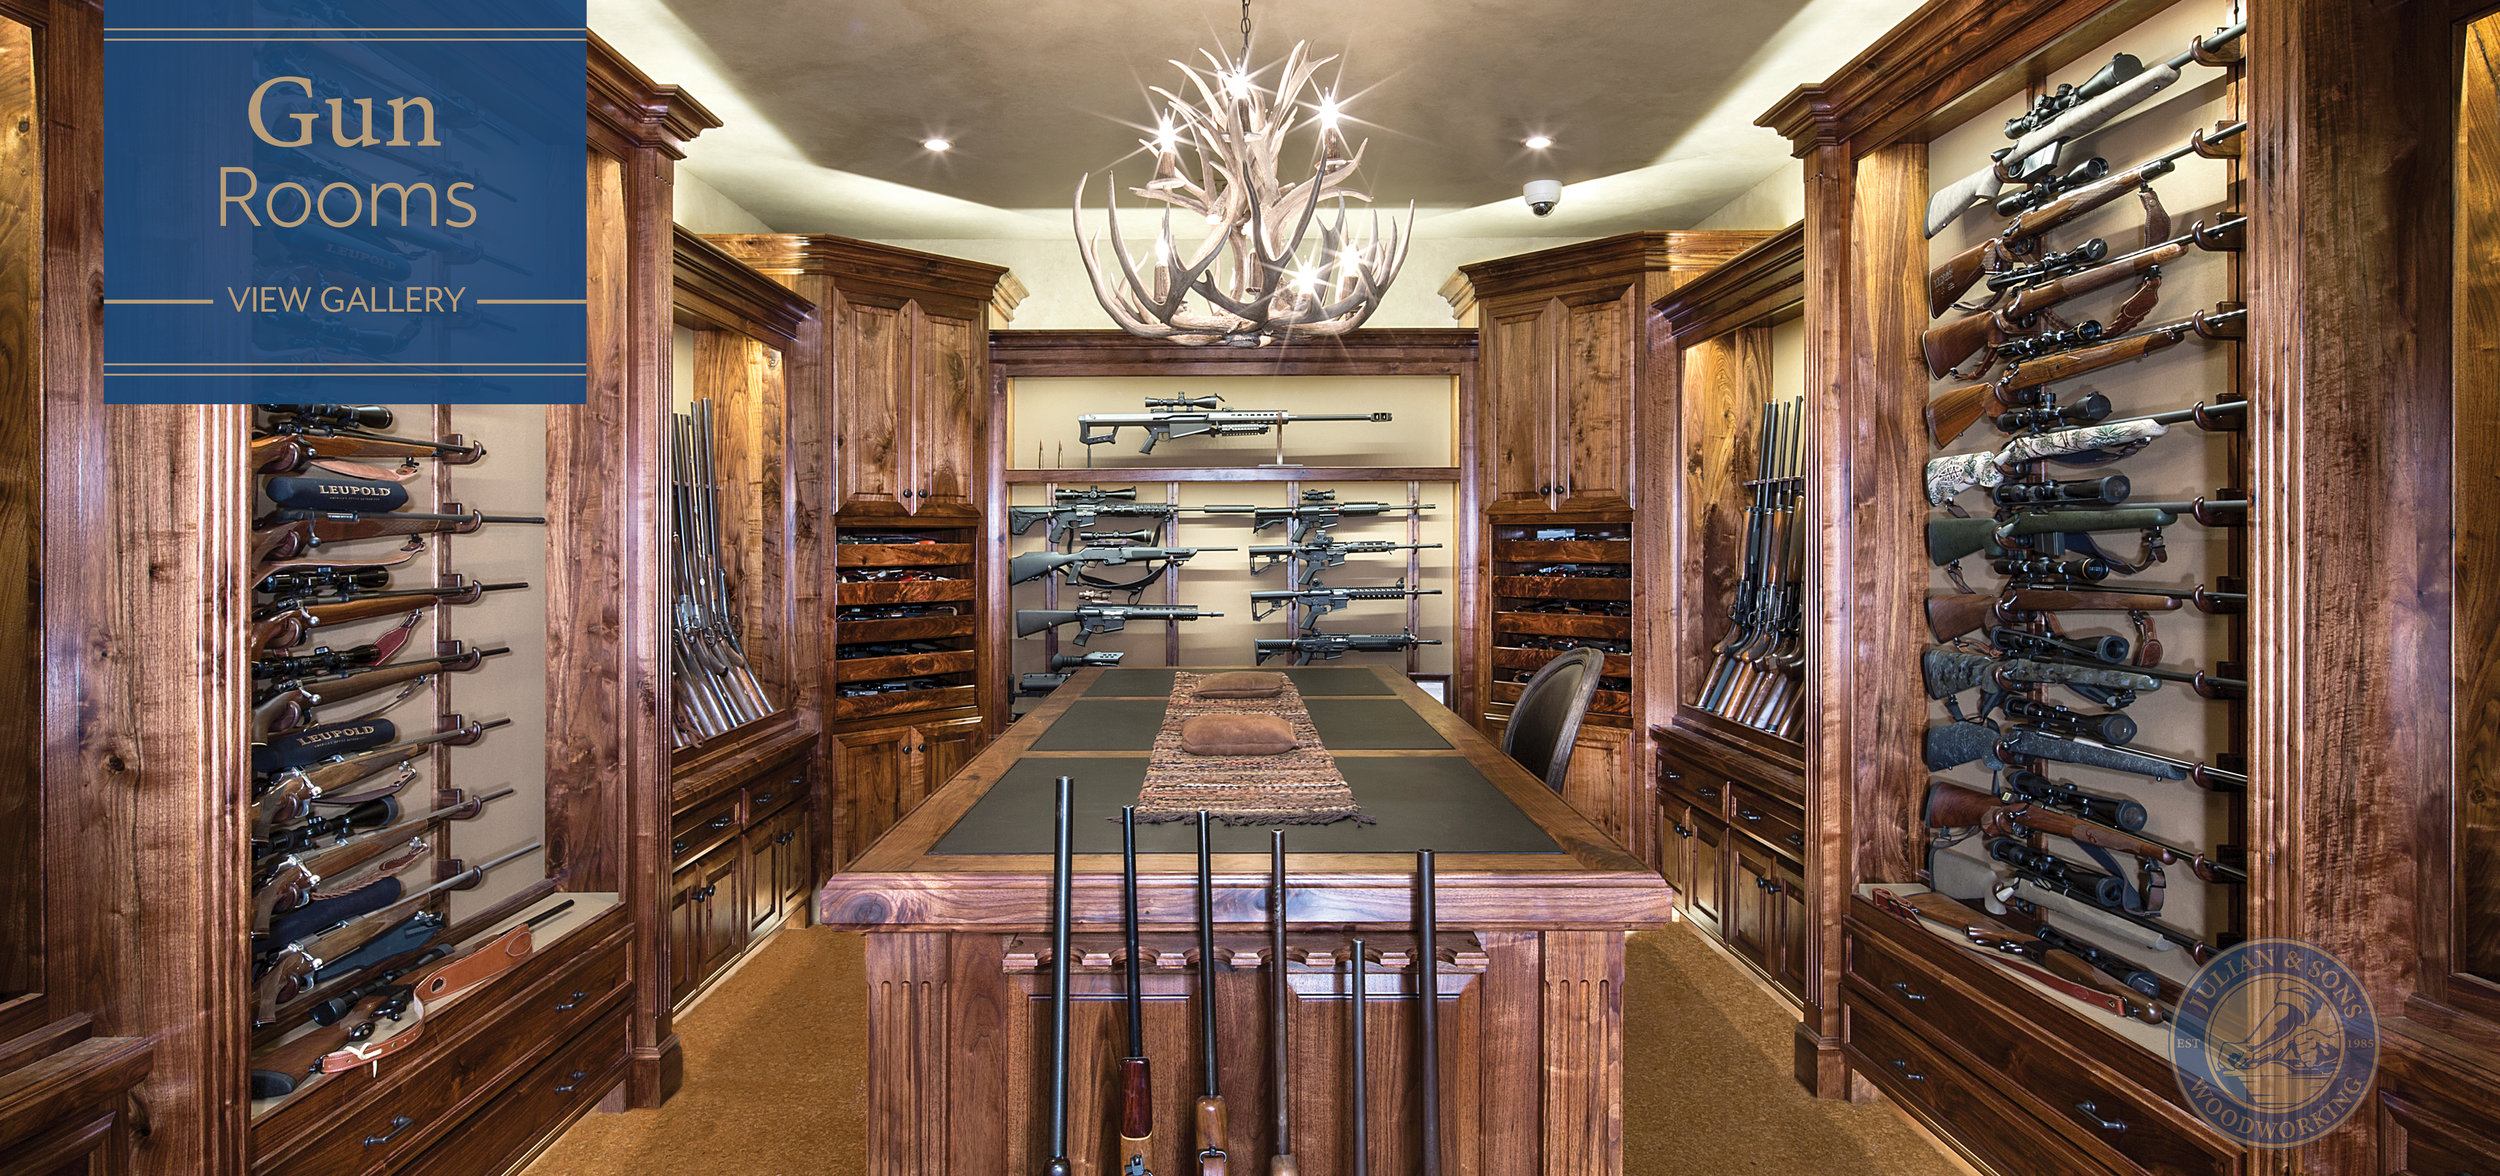 Gun Room Homepage Slide 3-Archer gun room.jpg